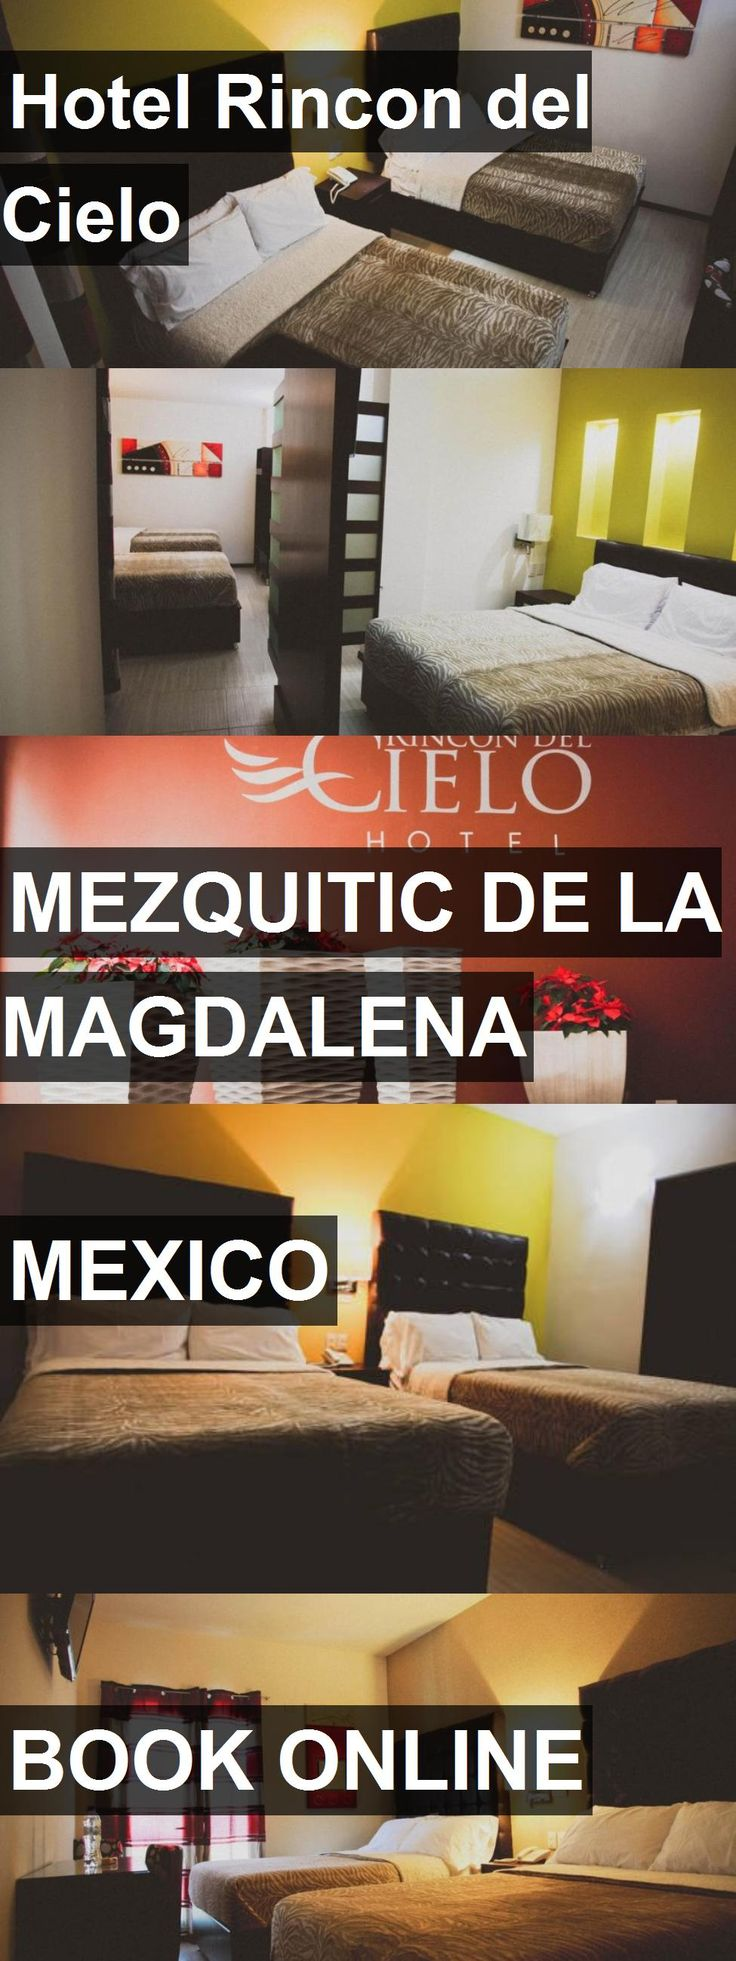 Hotel Hotel Rincon del Cielo in Mezquitic de la Magdalena, Mexico. For more information, photos, reviews and best prices please follow the link. #Mexico #MezquiticdelaMagdalena #HotelRincondelCielo #hotel #travel #vacation